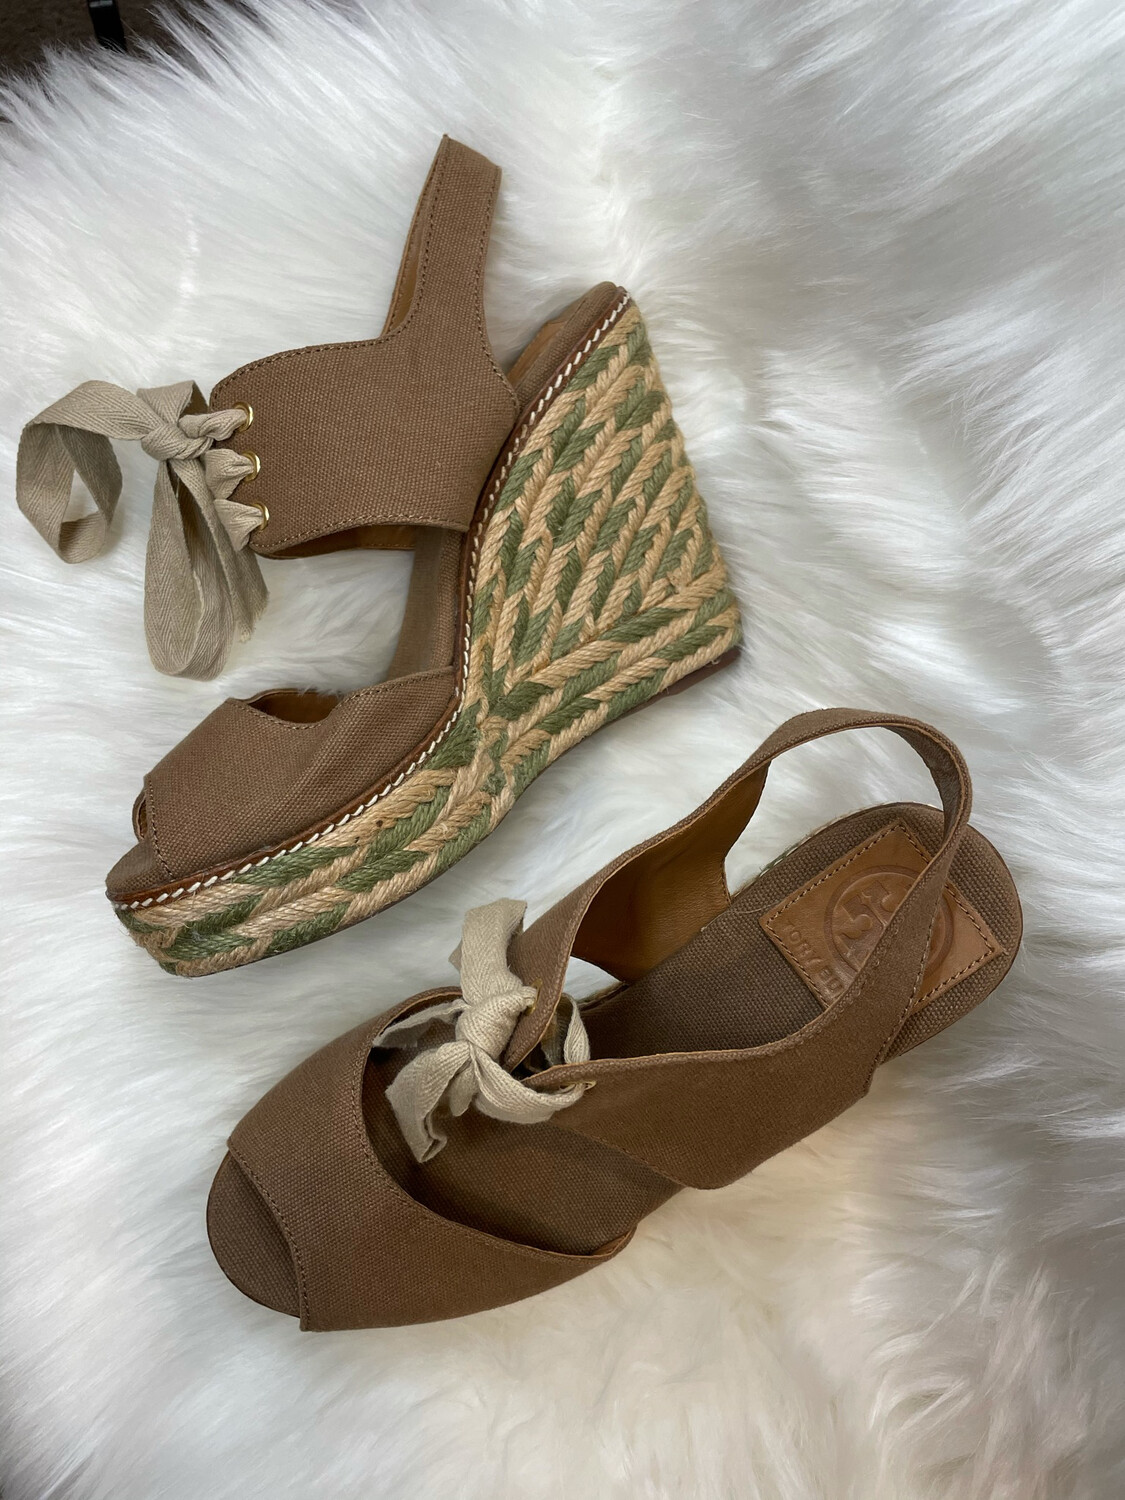 Tory Burch Brown & Green Lace Up Wedges - Size 8